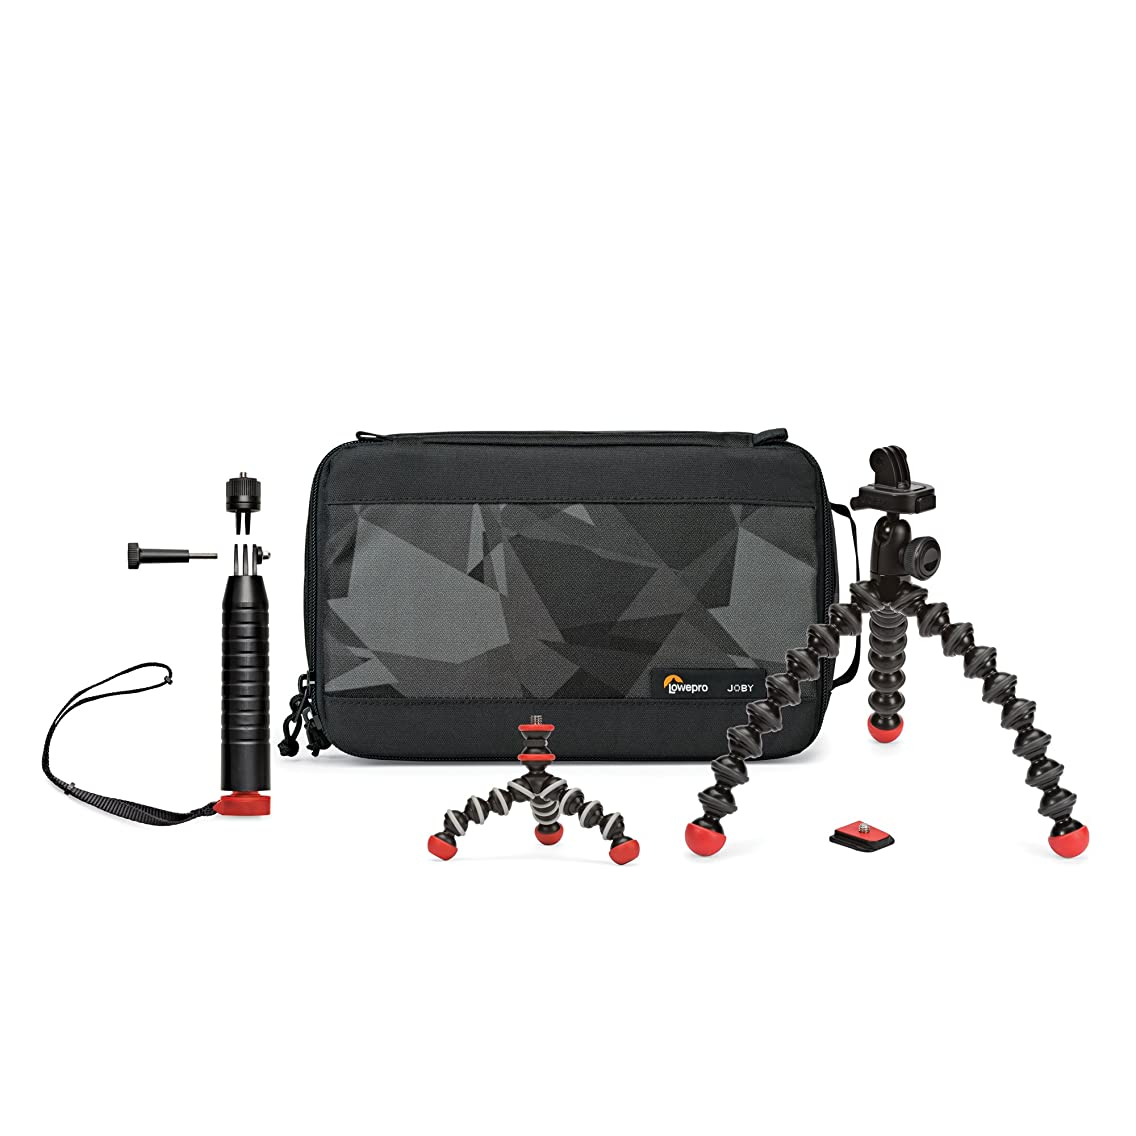 Action Base Kit From JOBY - For GoPro or Other Action Video Camera